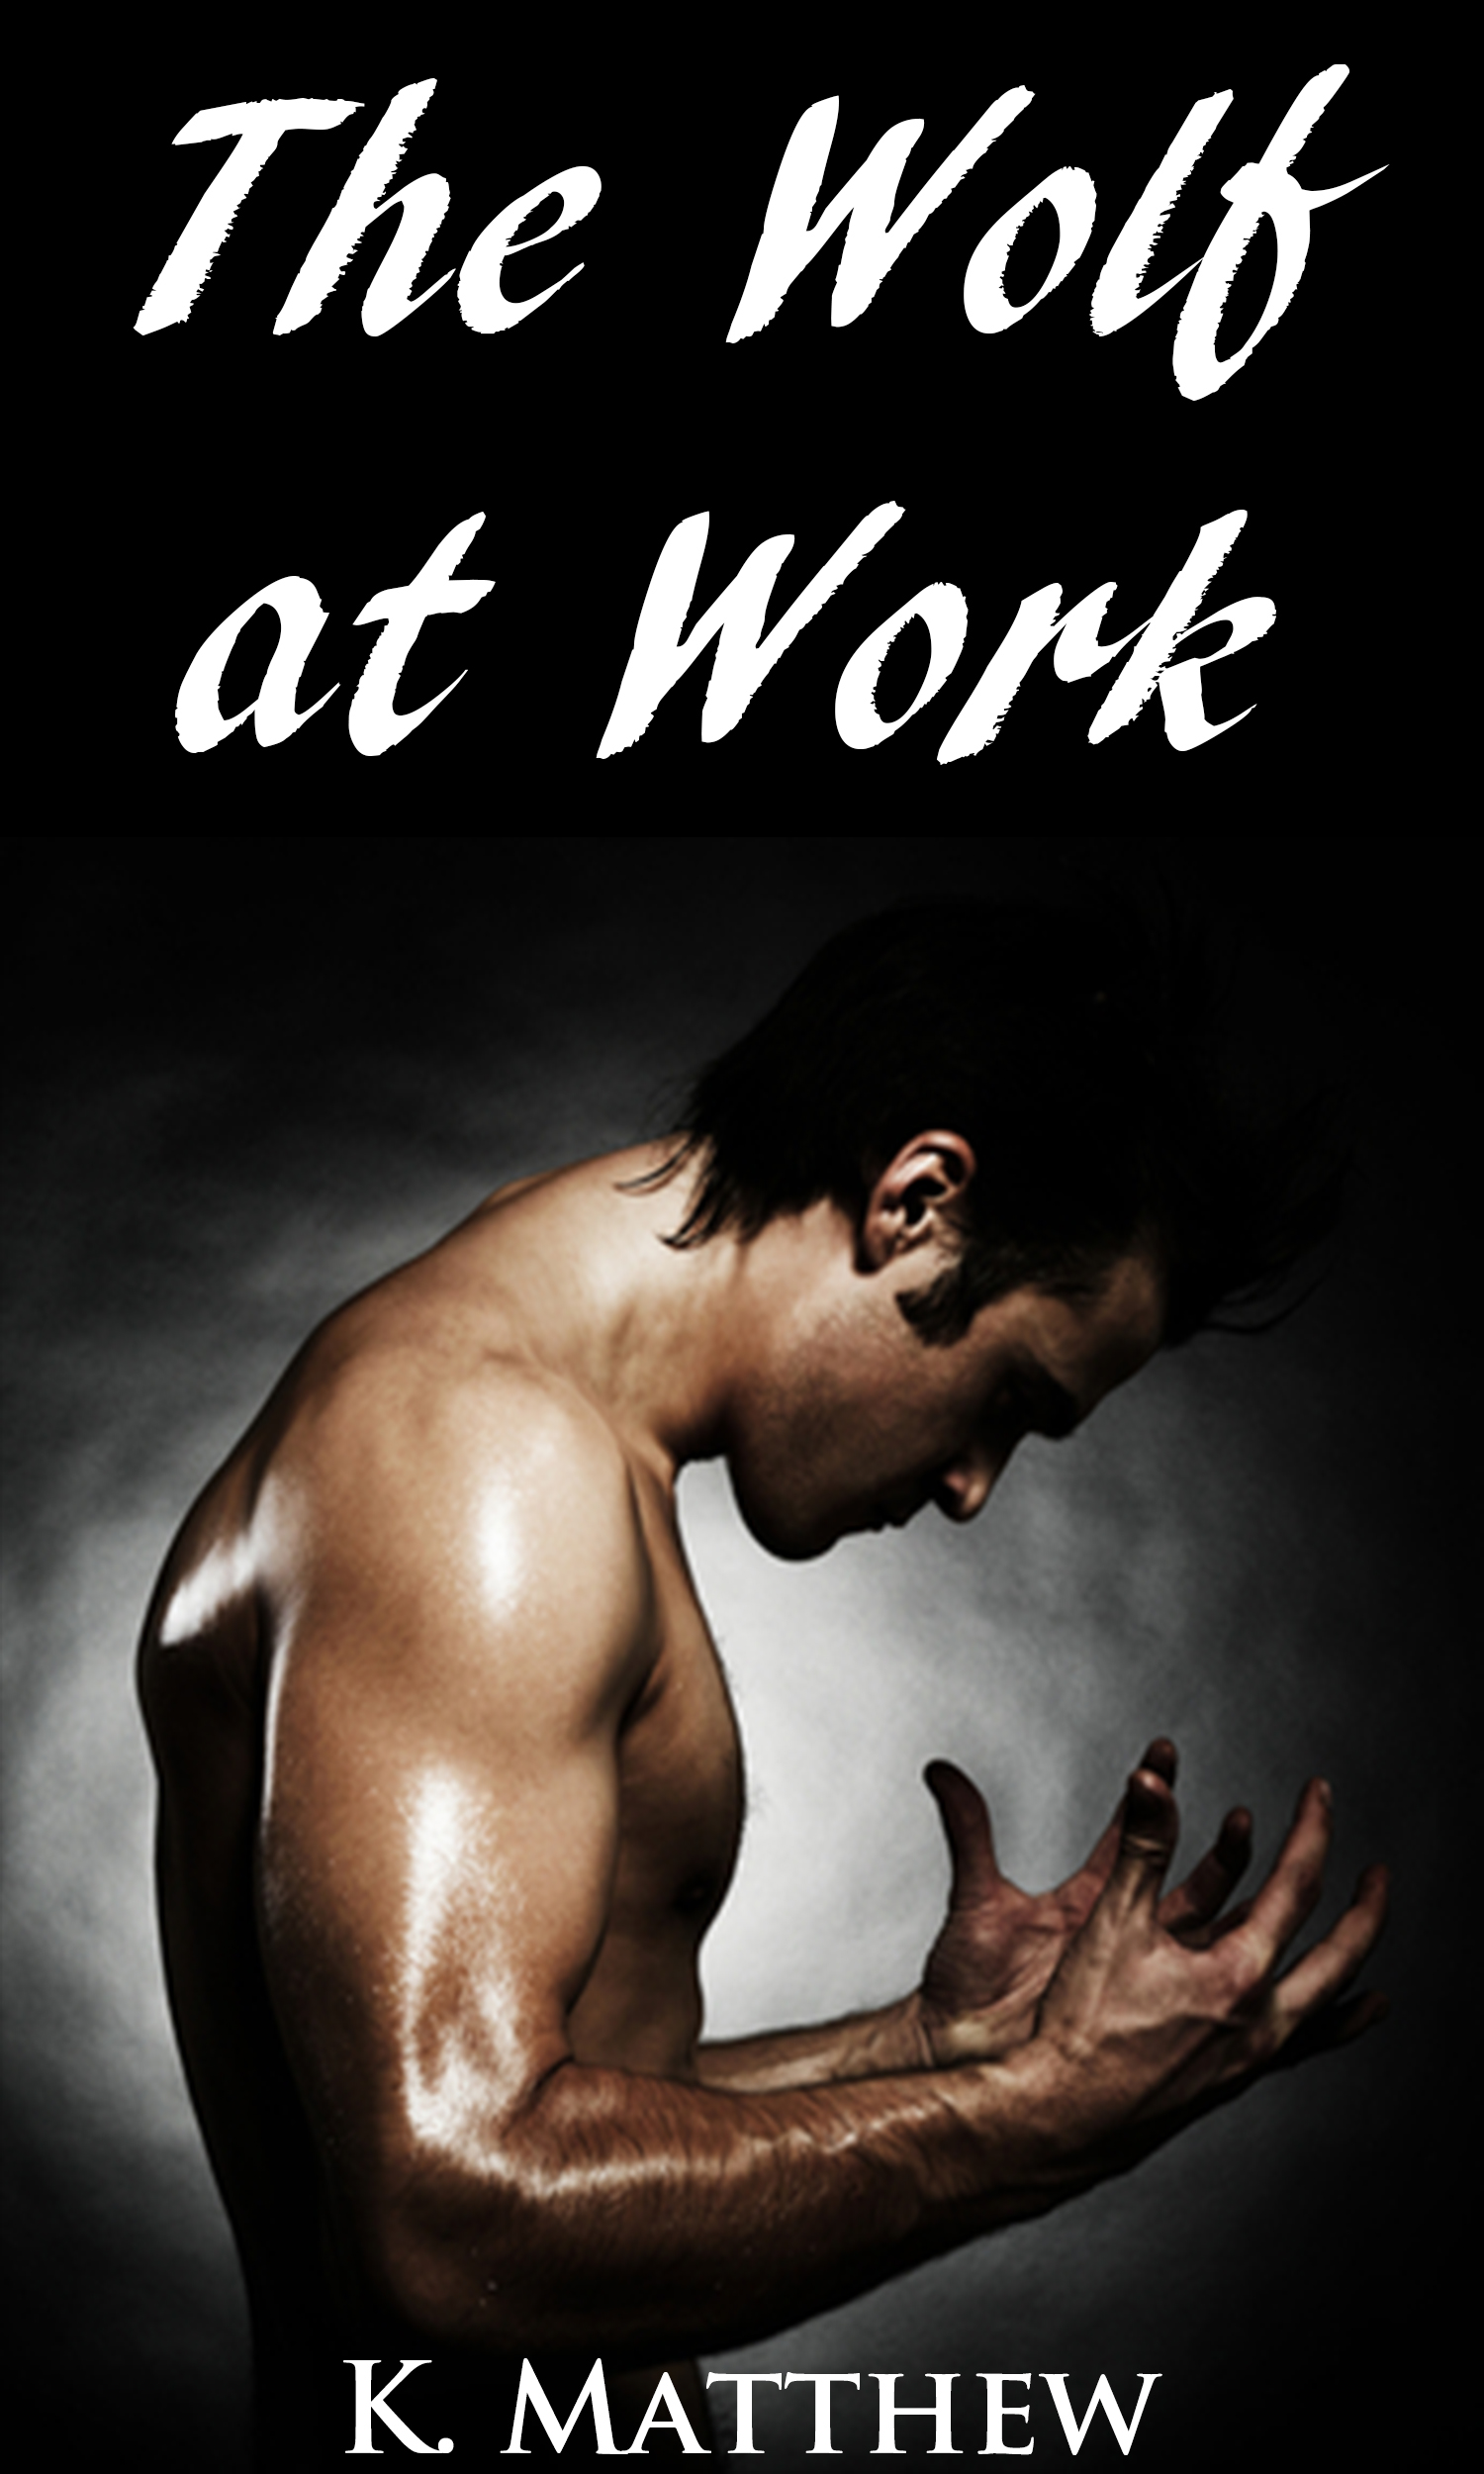 The wolf at work (bbw paranormal erotic romance)